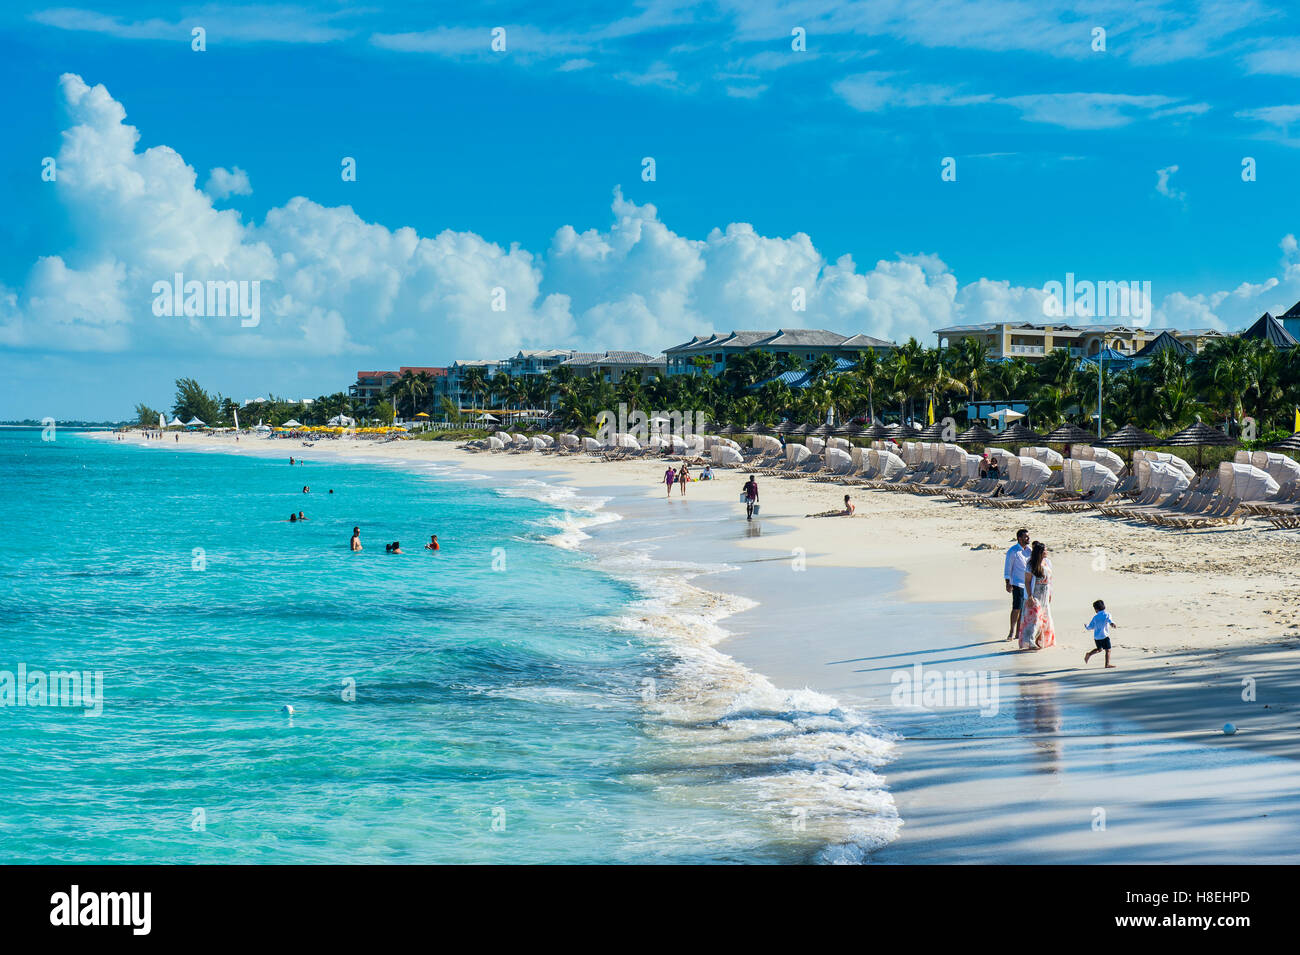 Beach of Beaches resort, Providenciales, Turks and Caicos, Caribbean, Central America - Stock Image